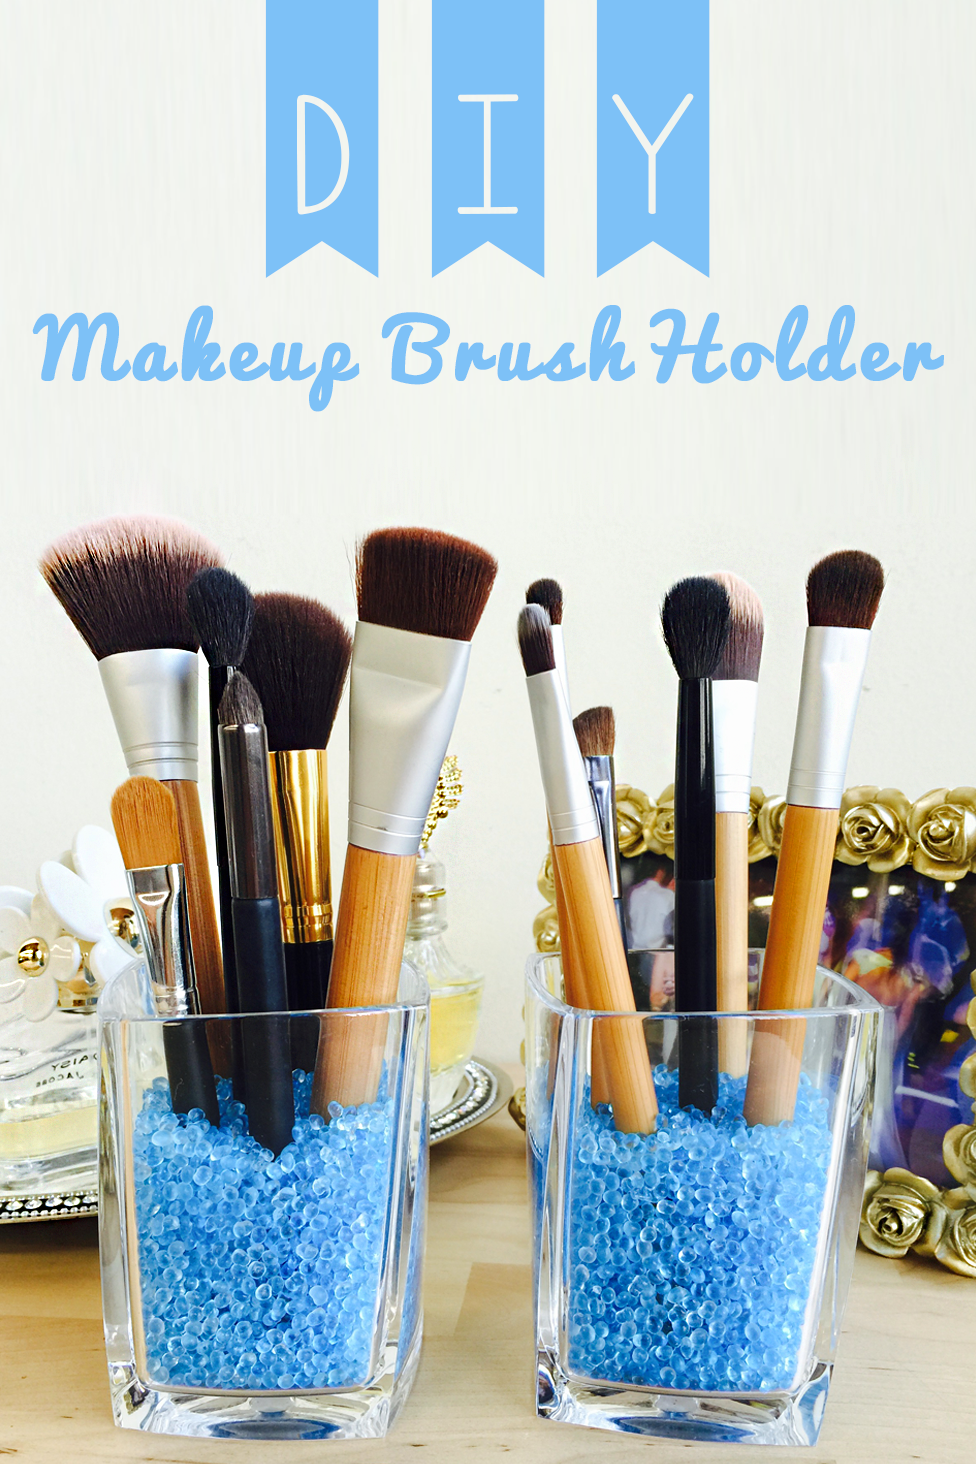 Use our fragrant beads to make your own makeup brush